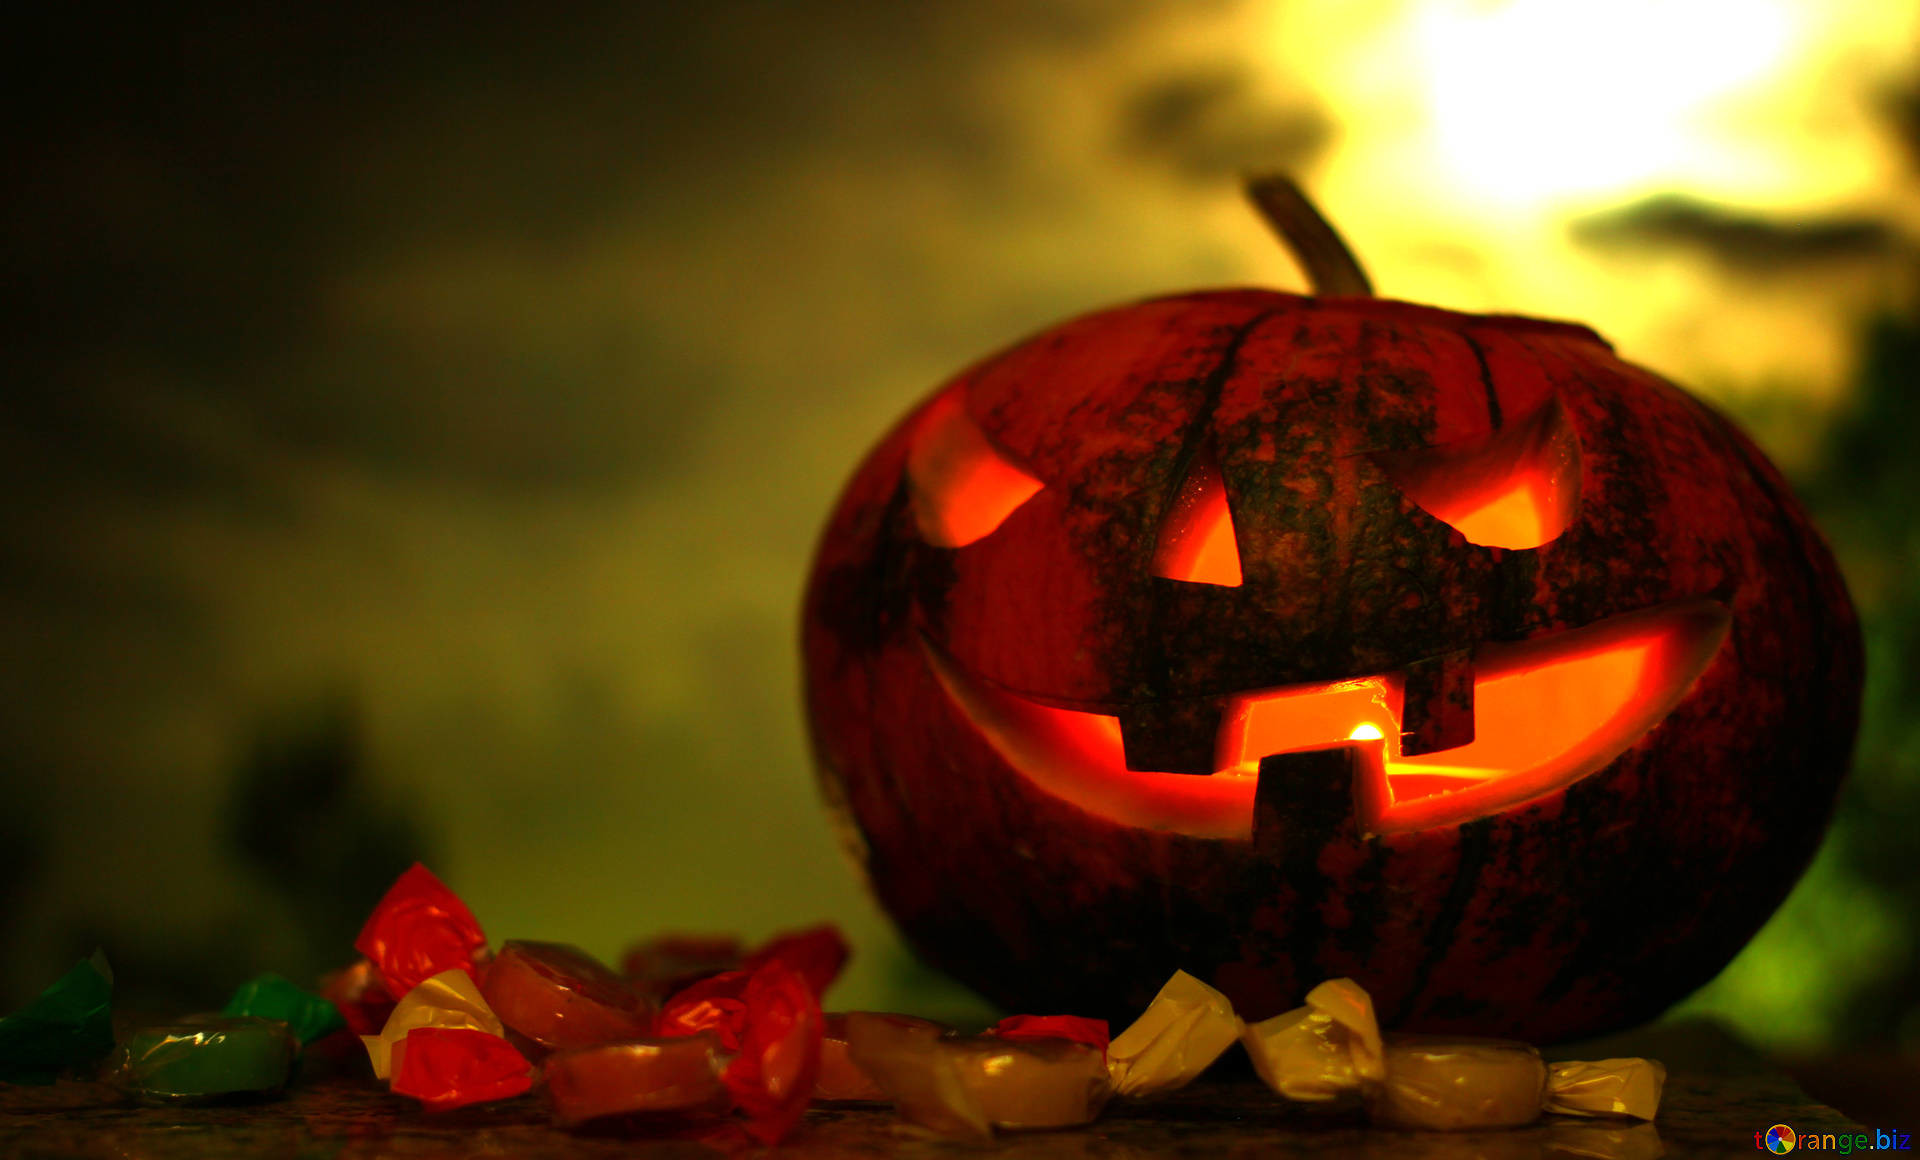 Halloween Pumpkin Wallpaper Hd.Halloween Pumpkins Desktop Wallpaper 67 Images